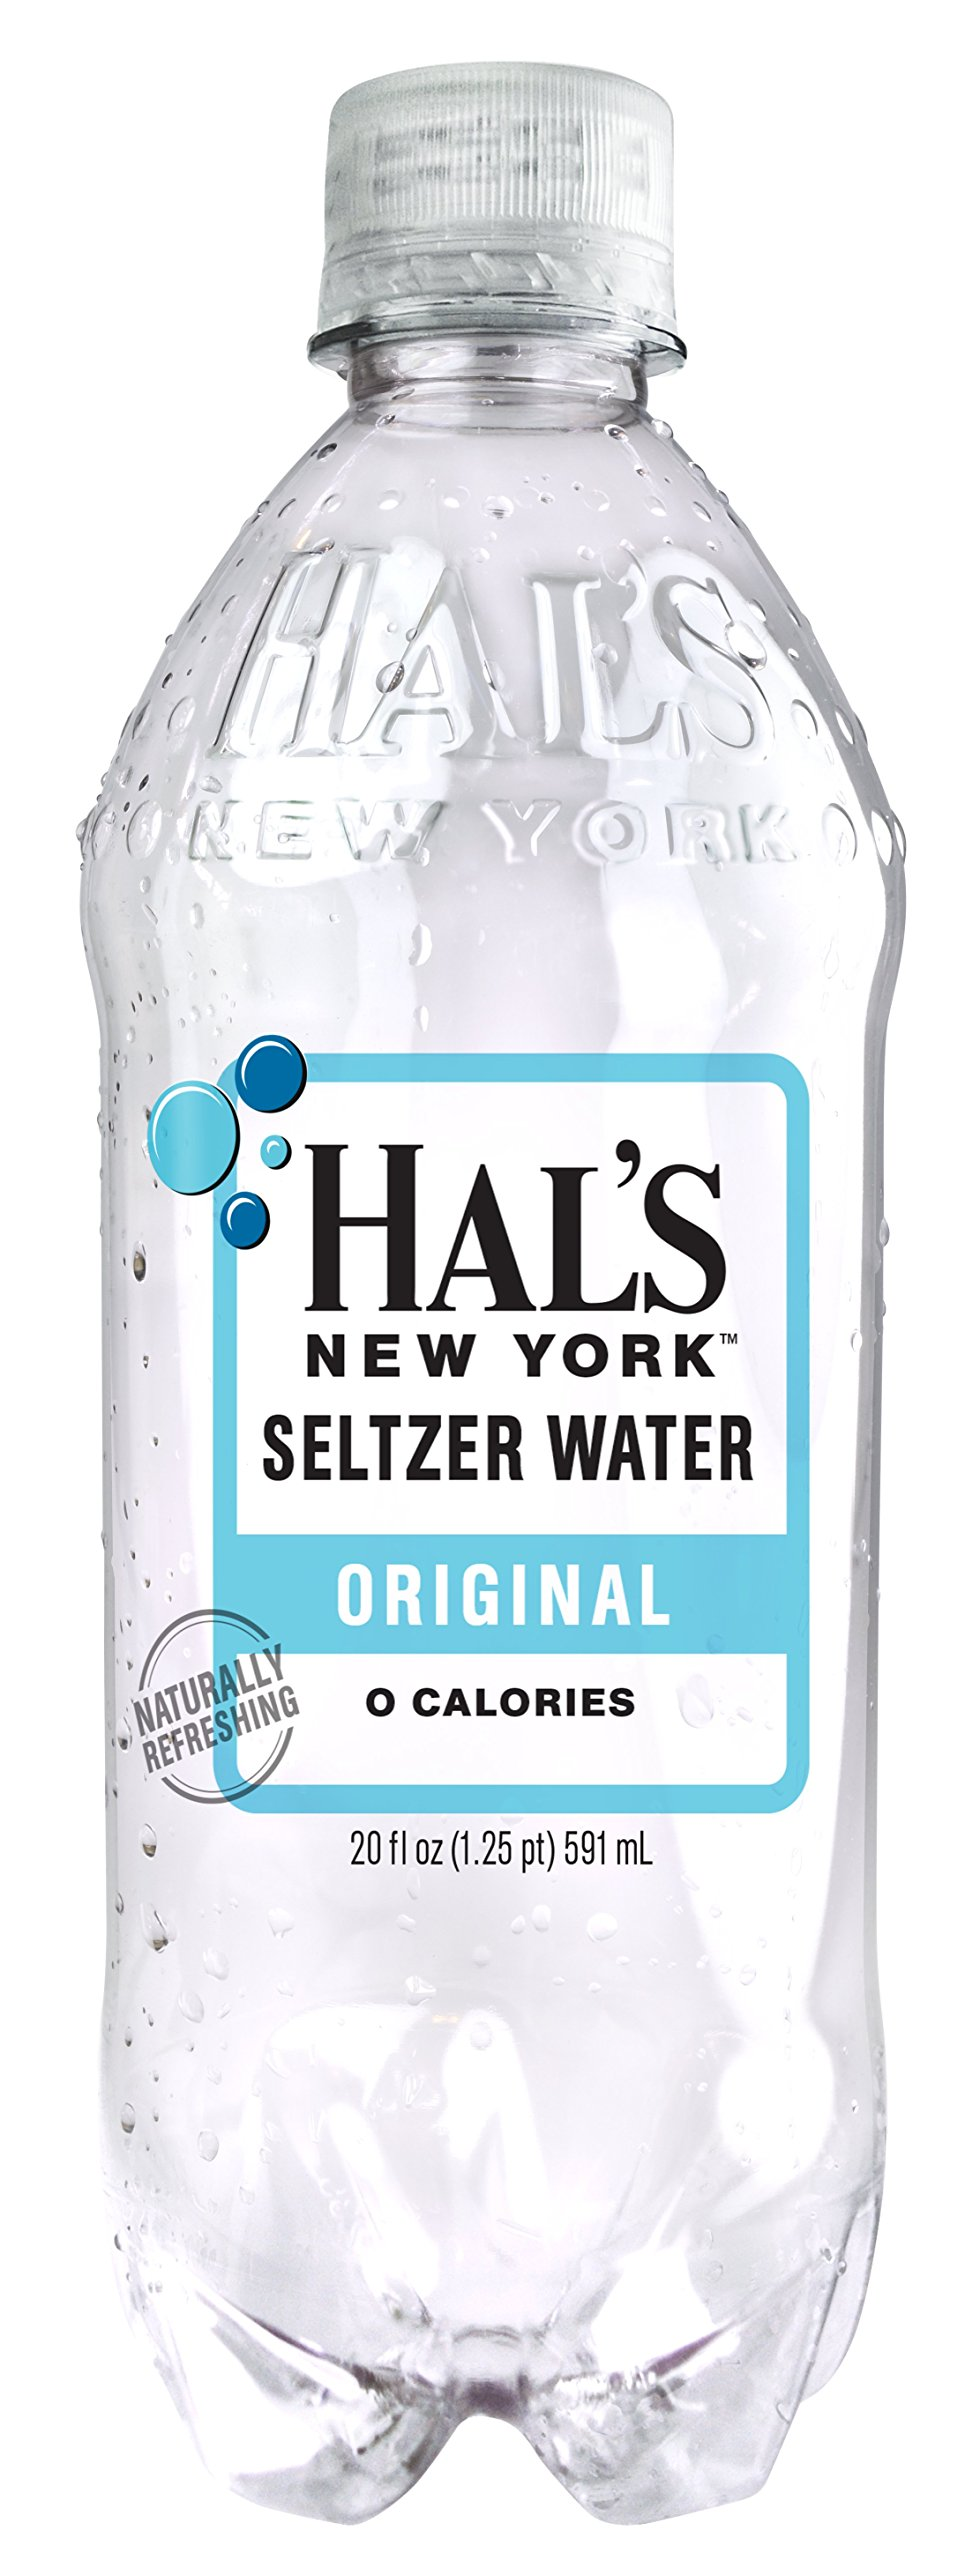 Hal's NY Seltzer Water 20 Oz Bottles (Pack of 24) (Original) by Hal's New York